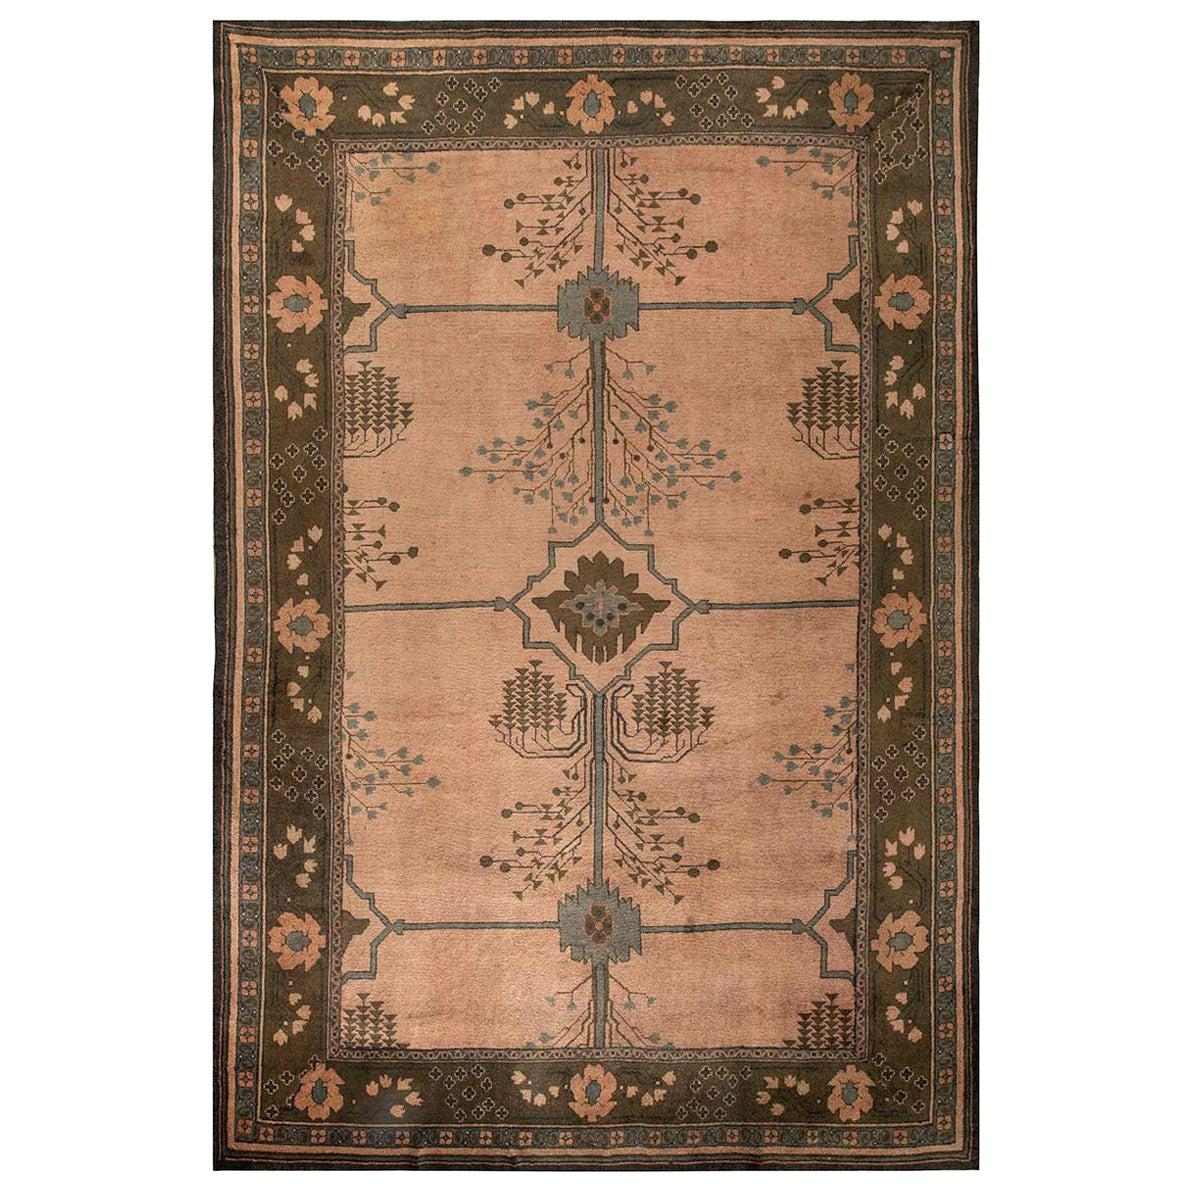 Arts & Crafts Dusty Pink, Blue & Taupe Wool Rug by Gavin Morton 'Size Adjusted'